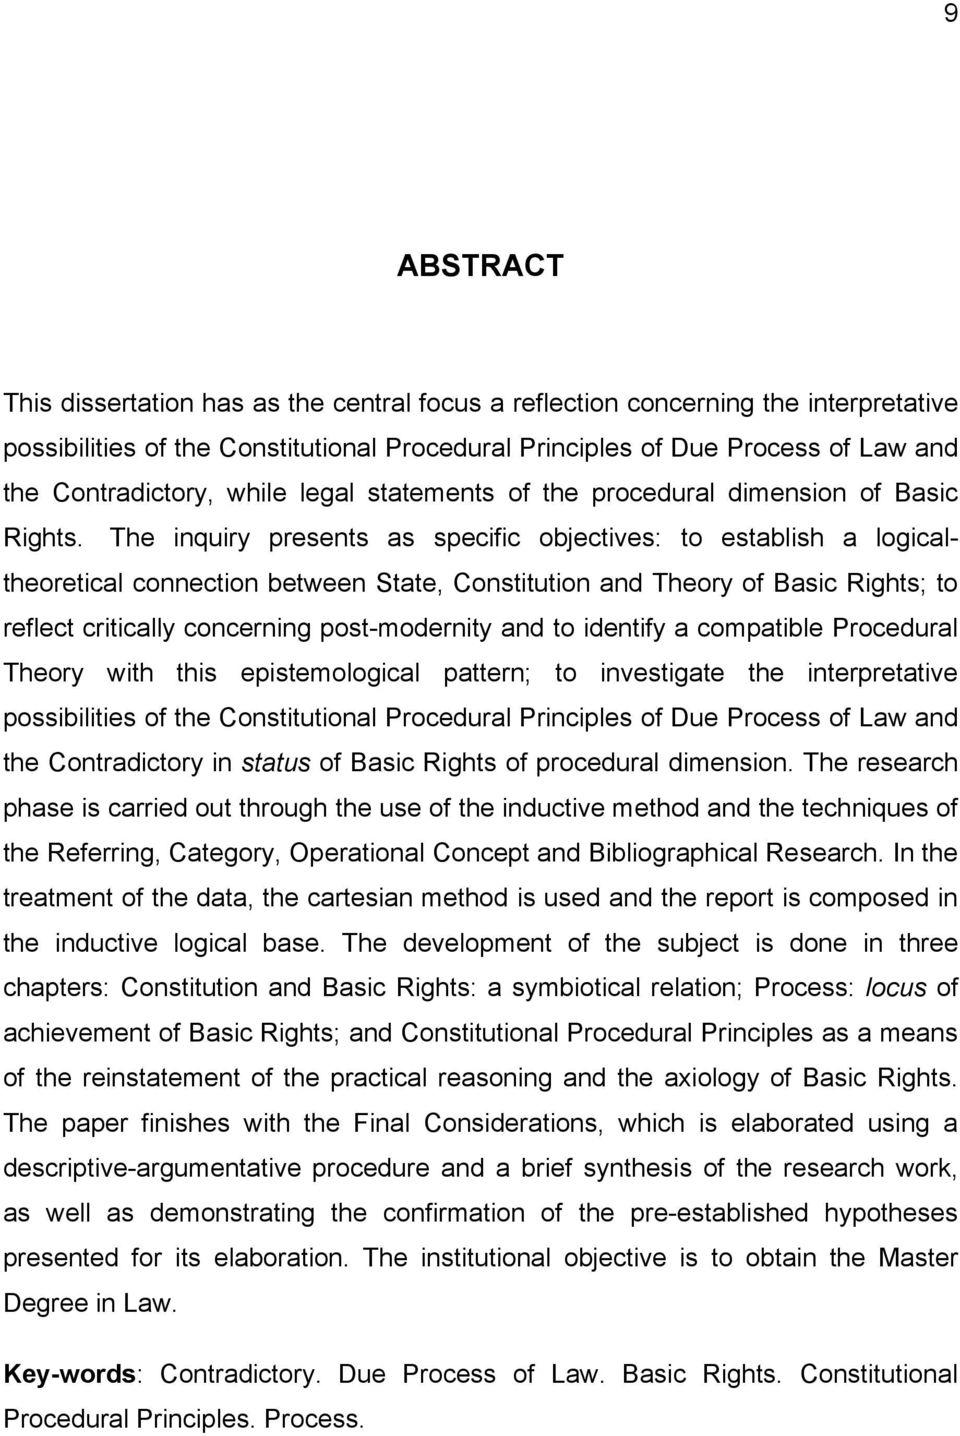 The inquiry presents as specific objectives: to establish a logicaltheoretical connection between State, Constitution and Theory of Basic Rights; to reflect critically concerning post-modernity and